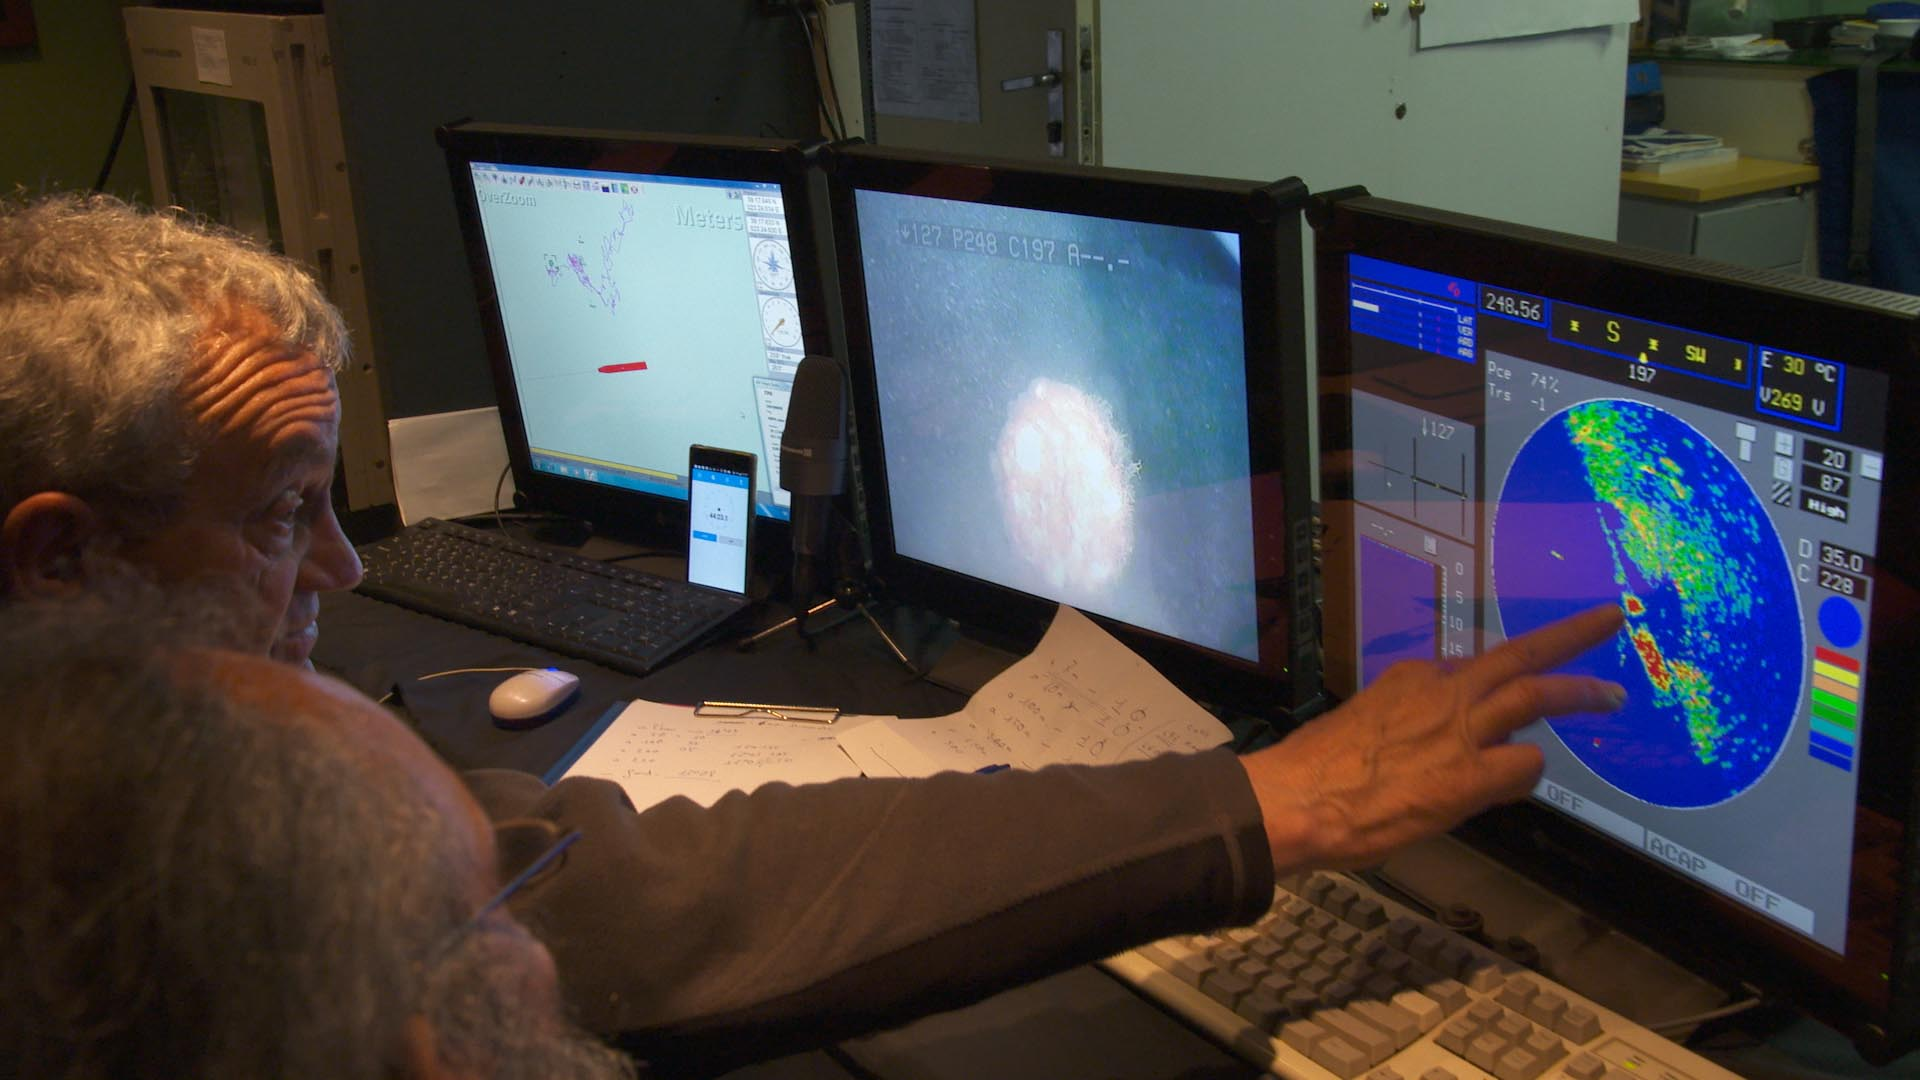 """There she is!"" The members of the exploration team check the sonar imagery of the submarine wreck on the monitors."